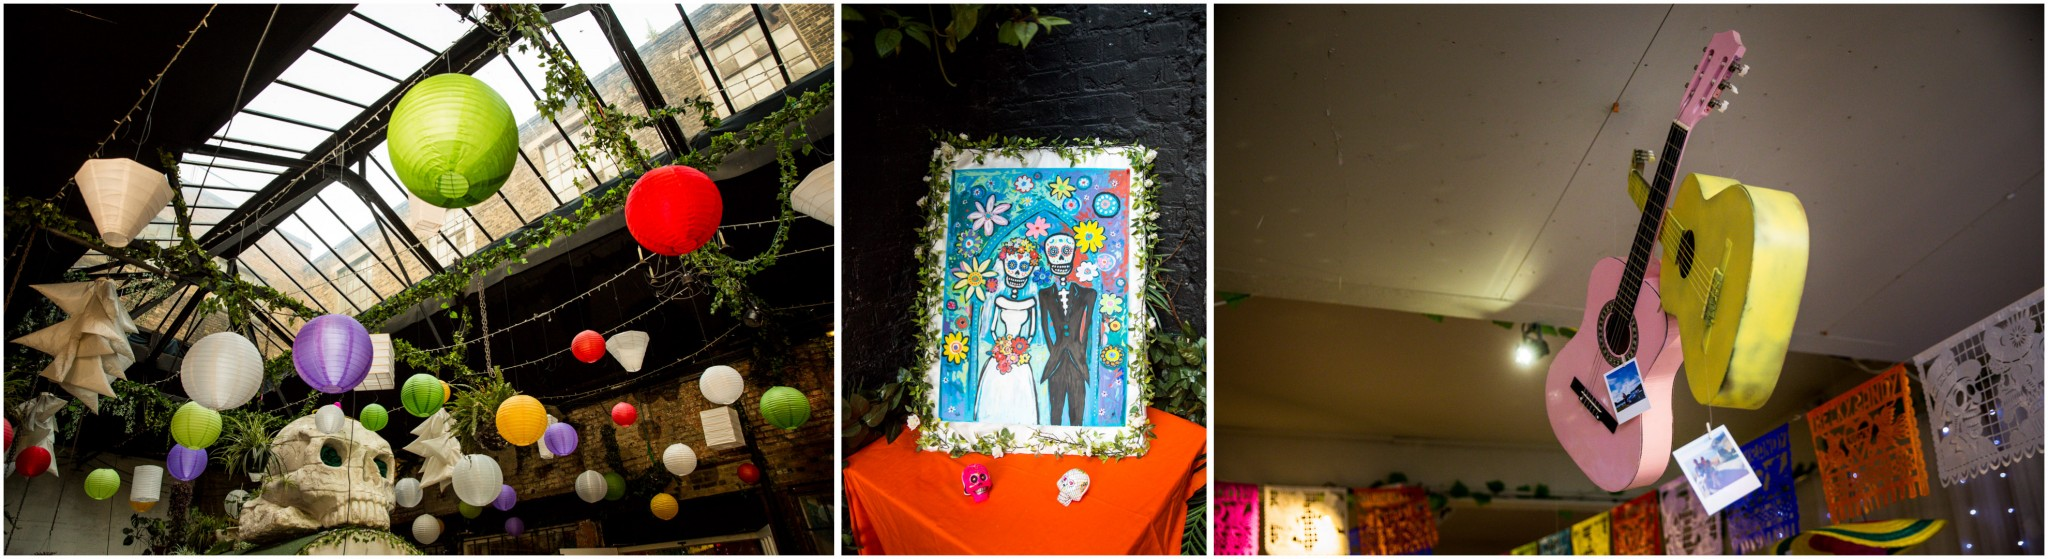 Islington Metal Works Wedding - Day of the Dead decorations